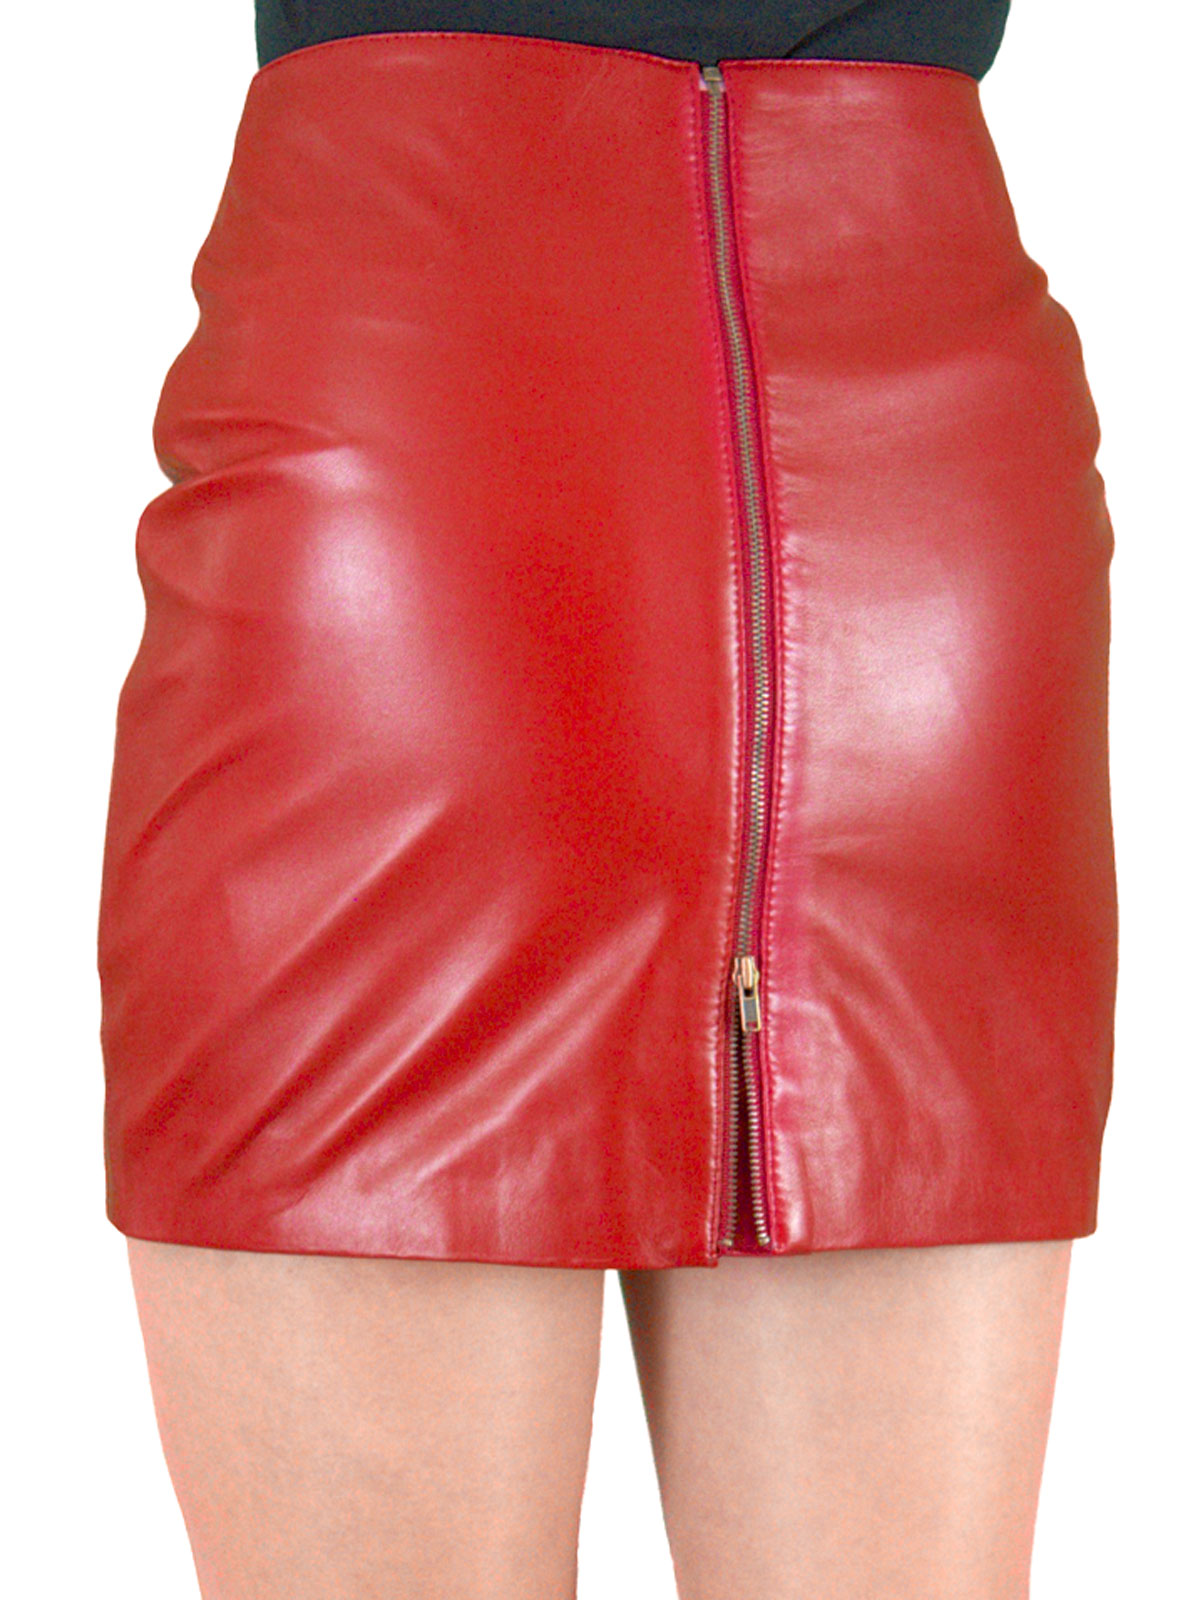 Soft Leather Mini Skirt With Full Rear Zip 5 Colours